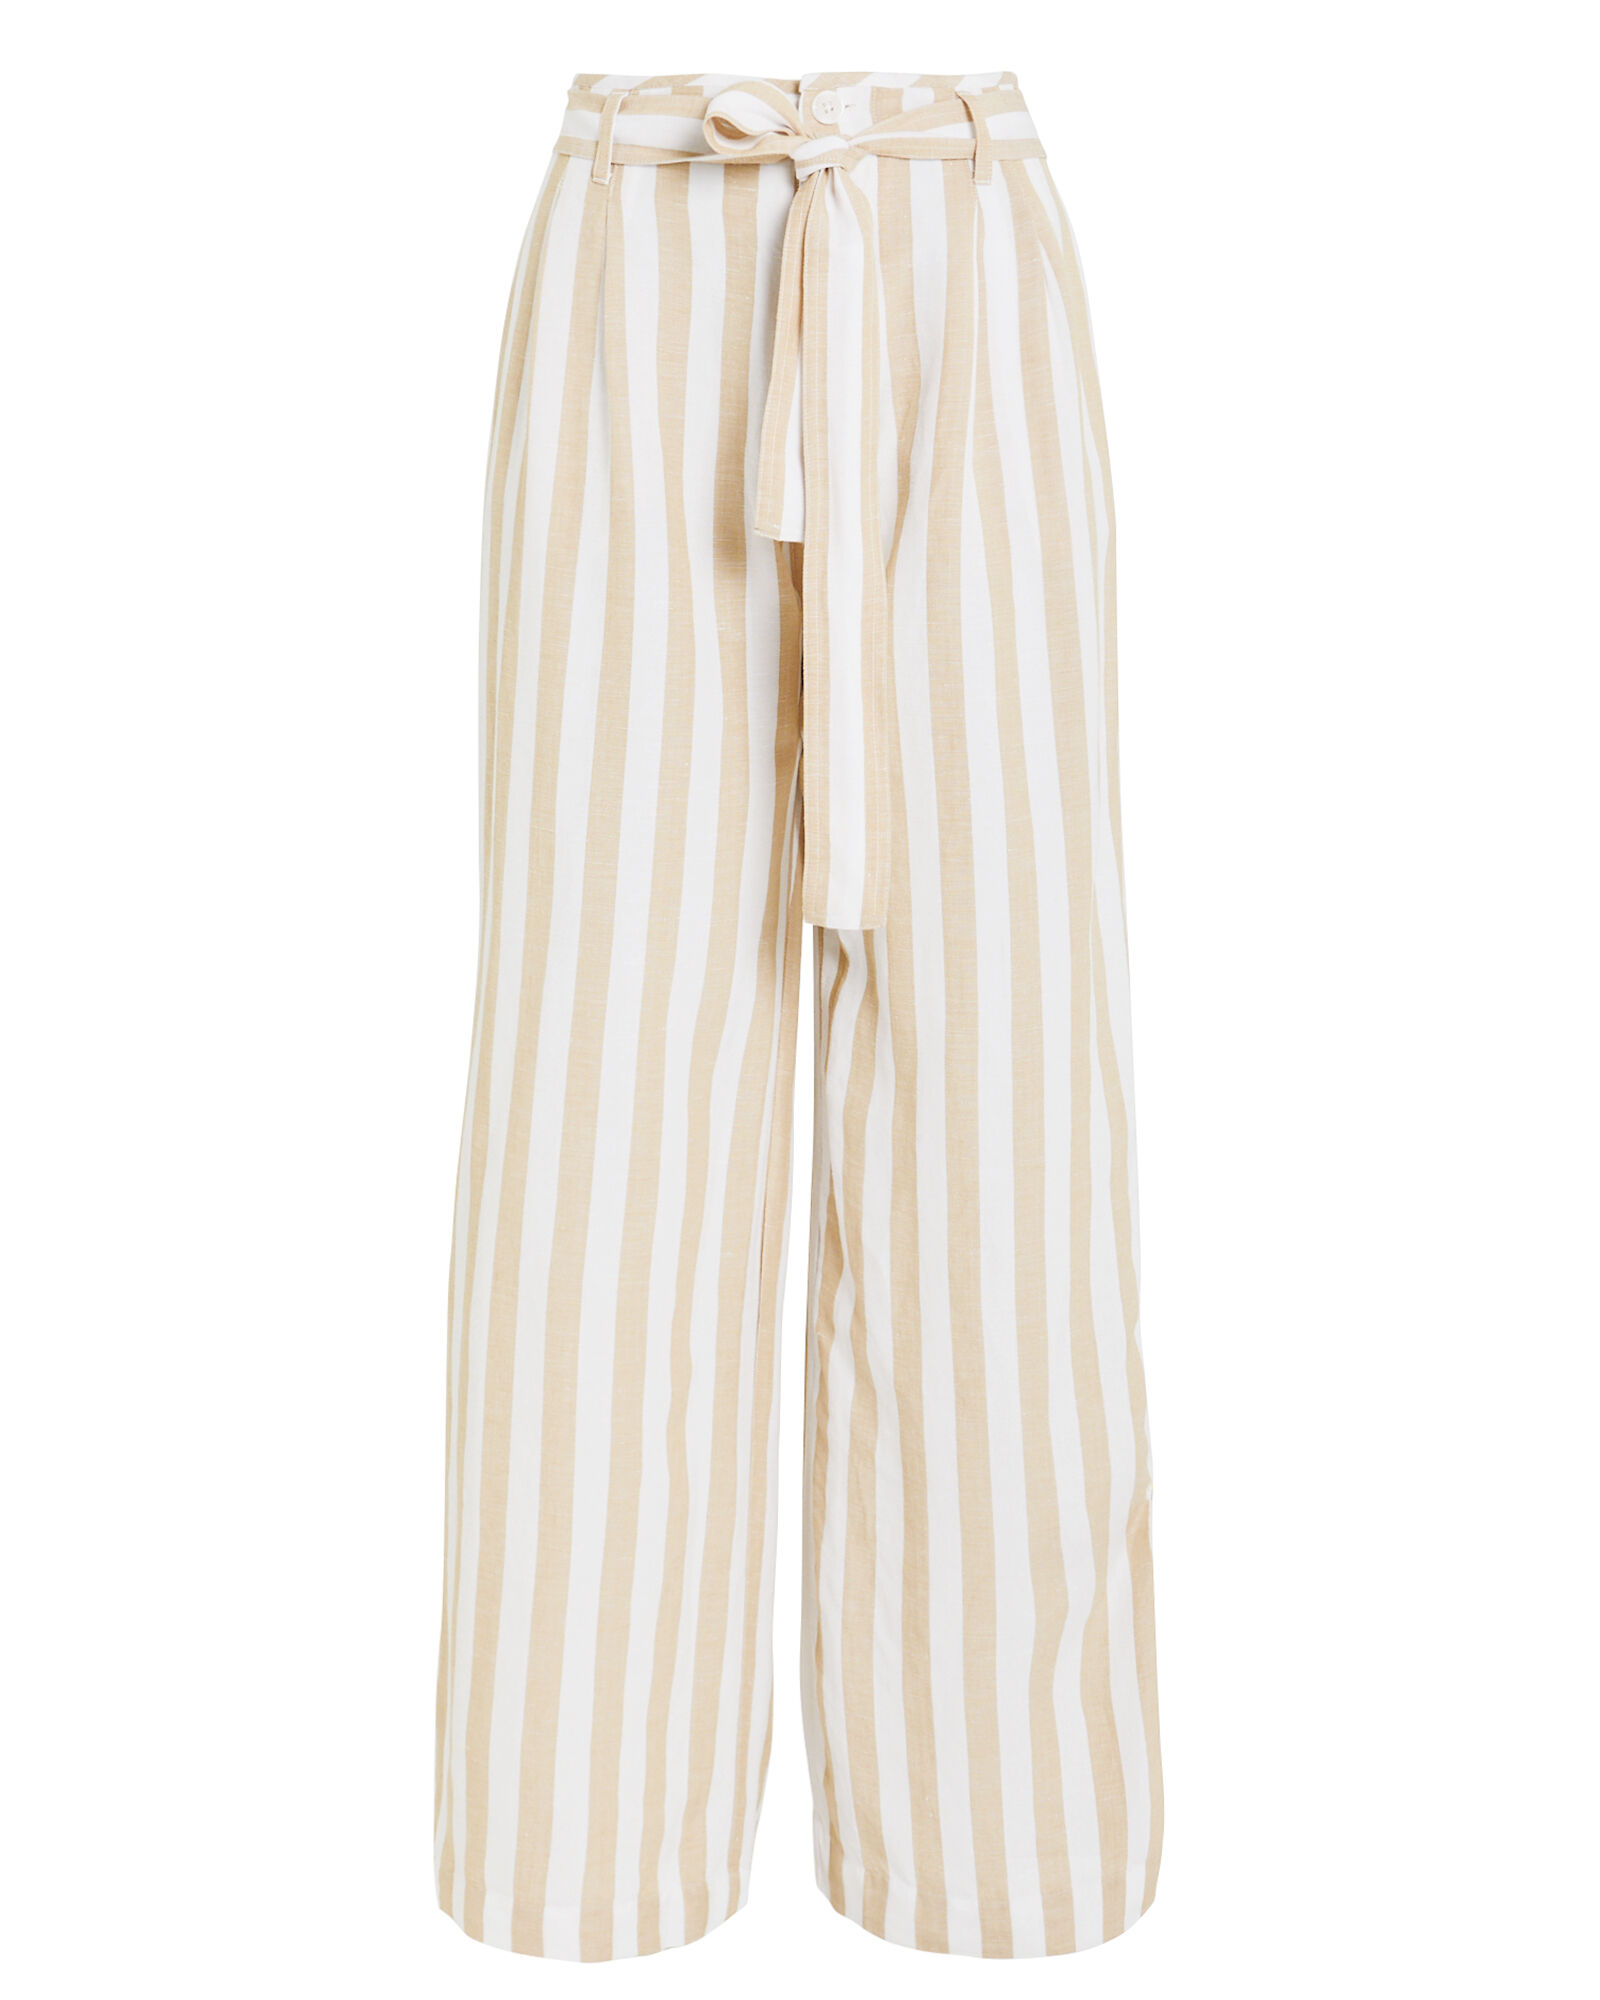 Jess Striped Wide Leg Trousers, BEIGE, hi-res